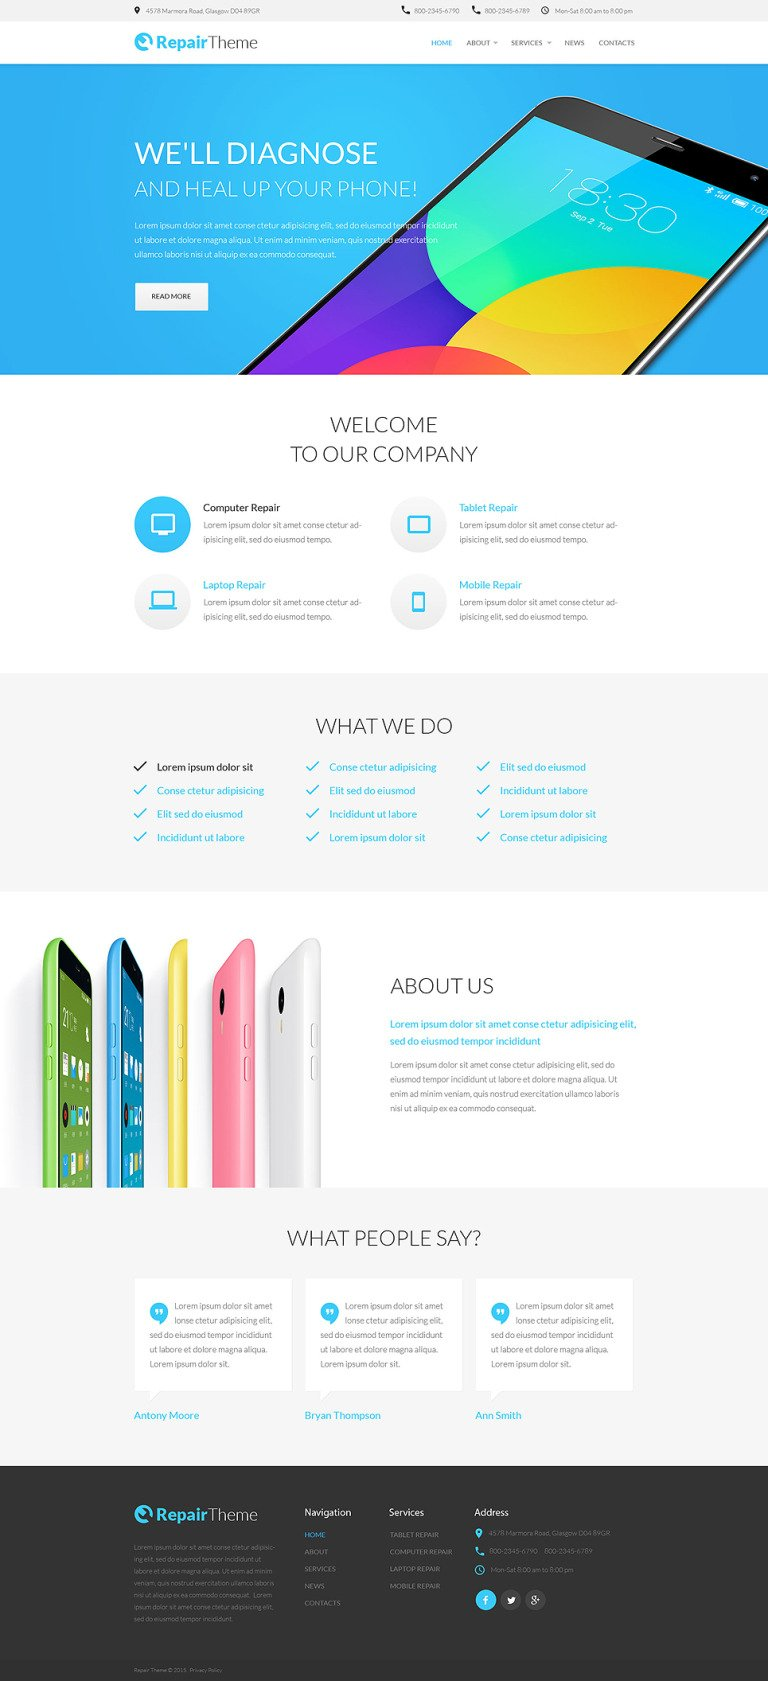 RepairTheme Website Template New Screenshots BIG